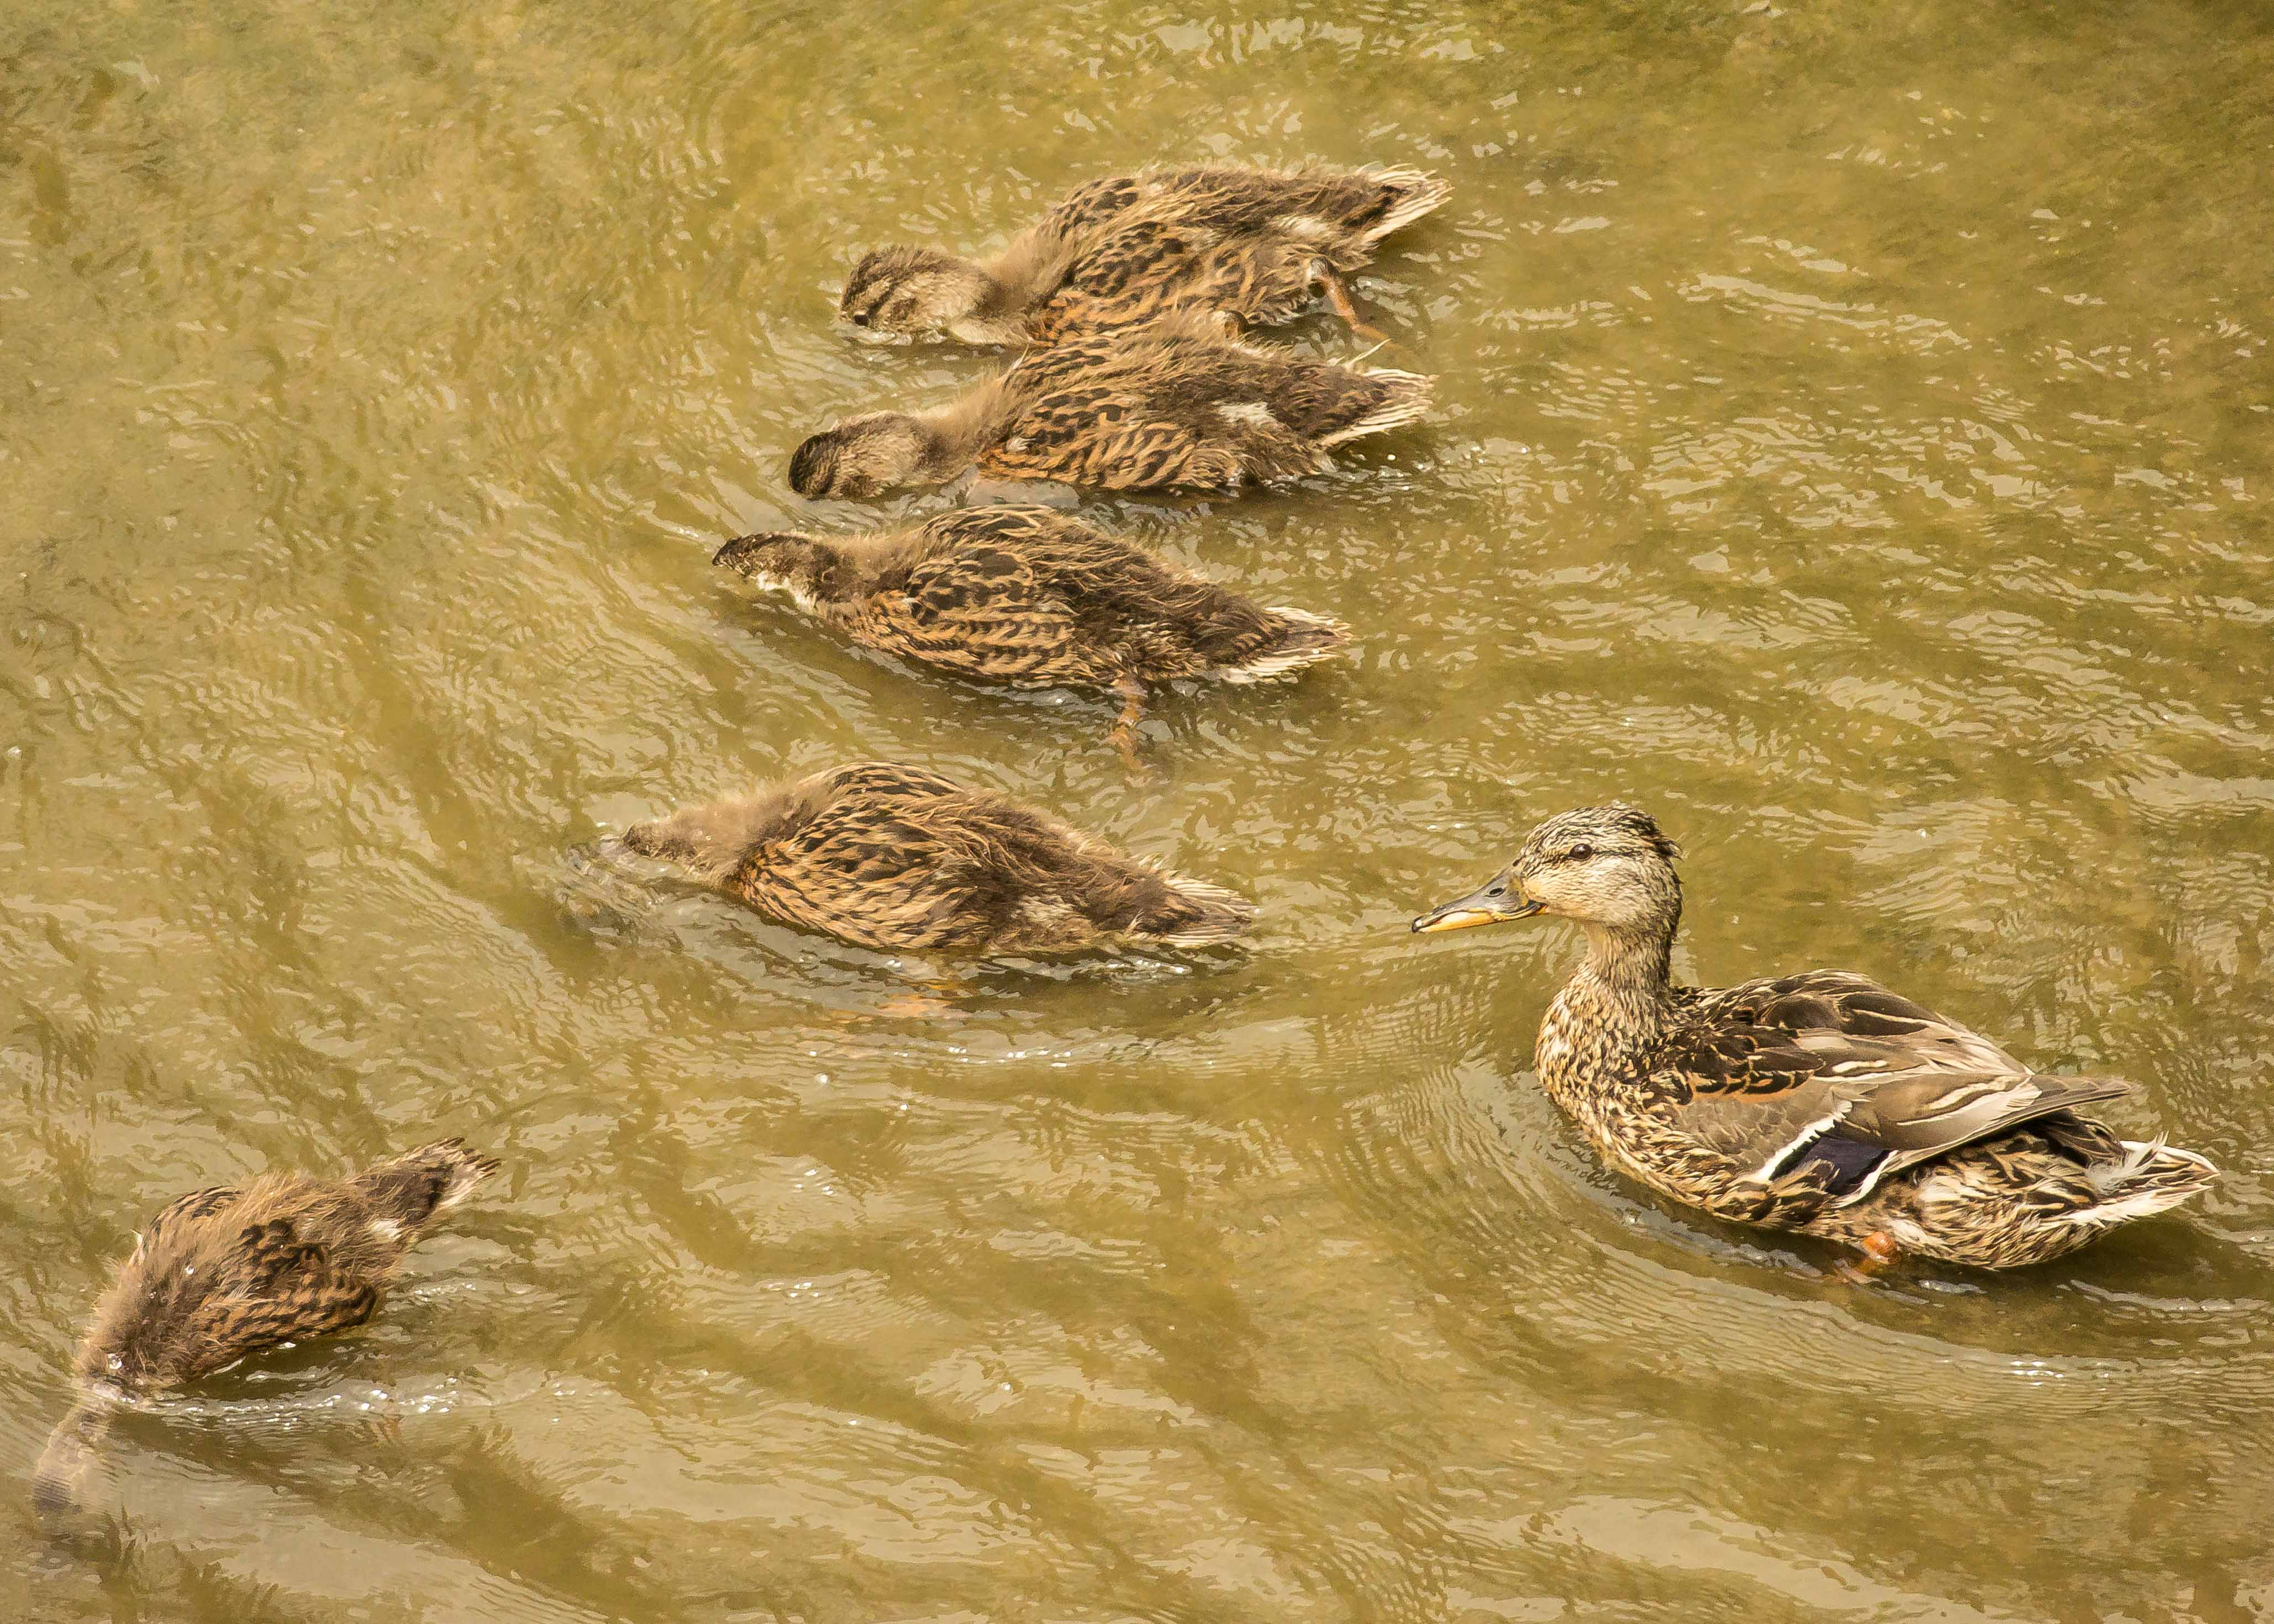 This is how you get all your ducks in a row.